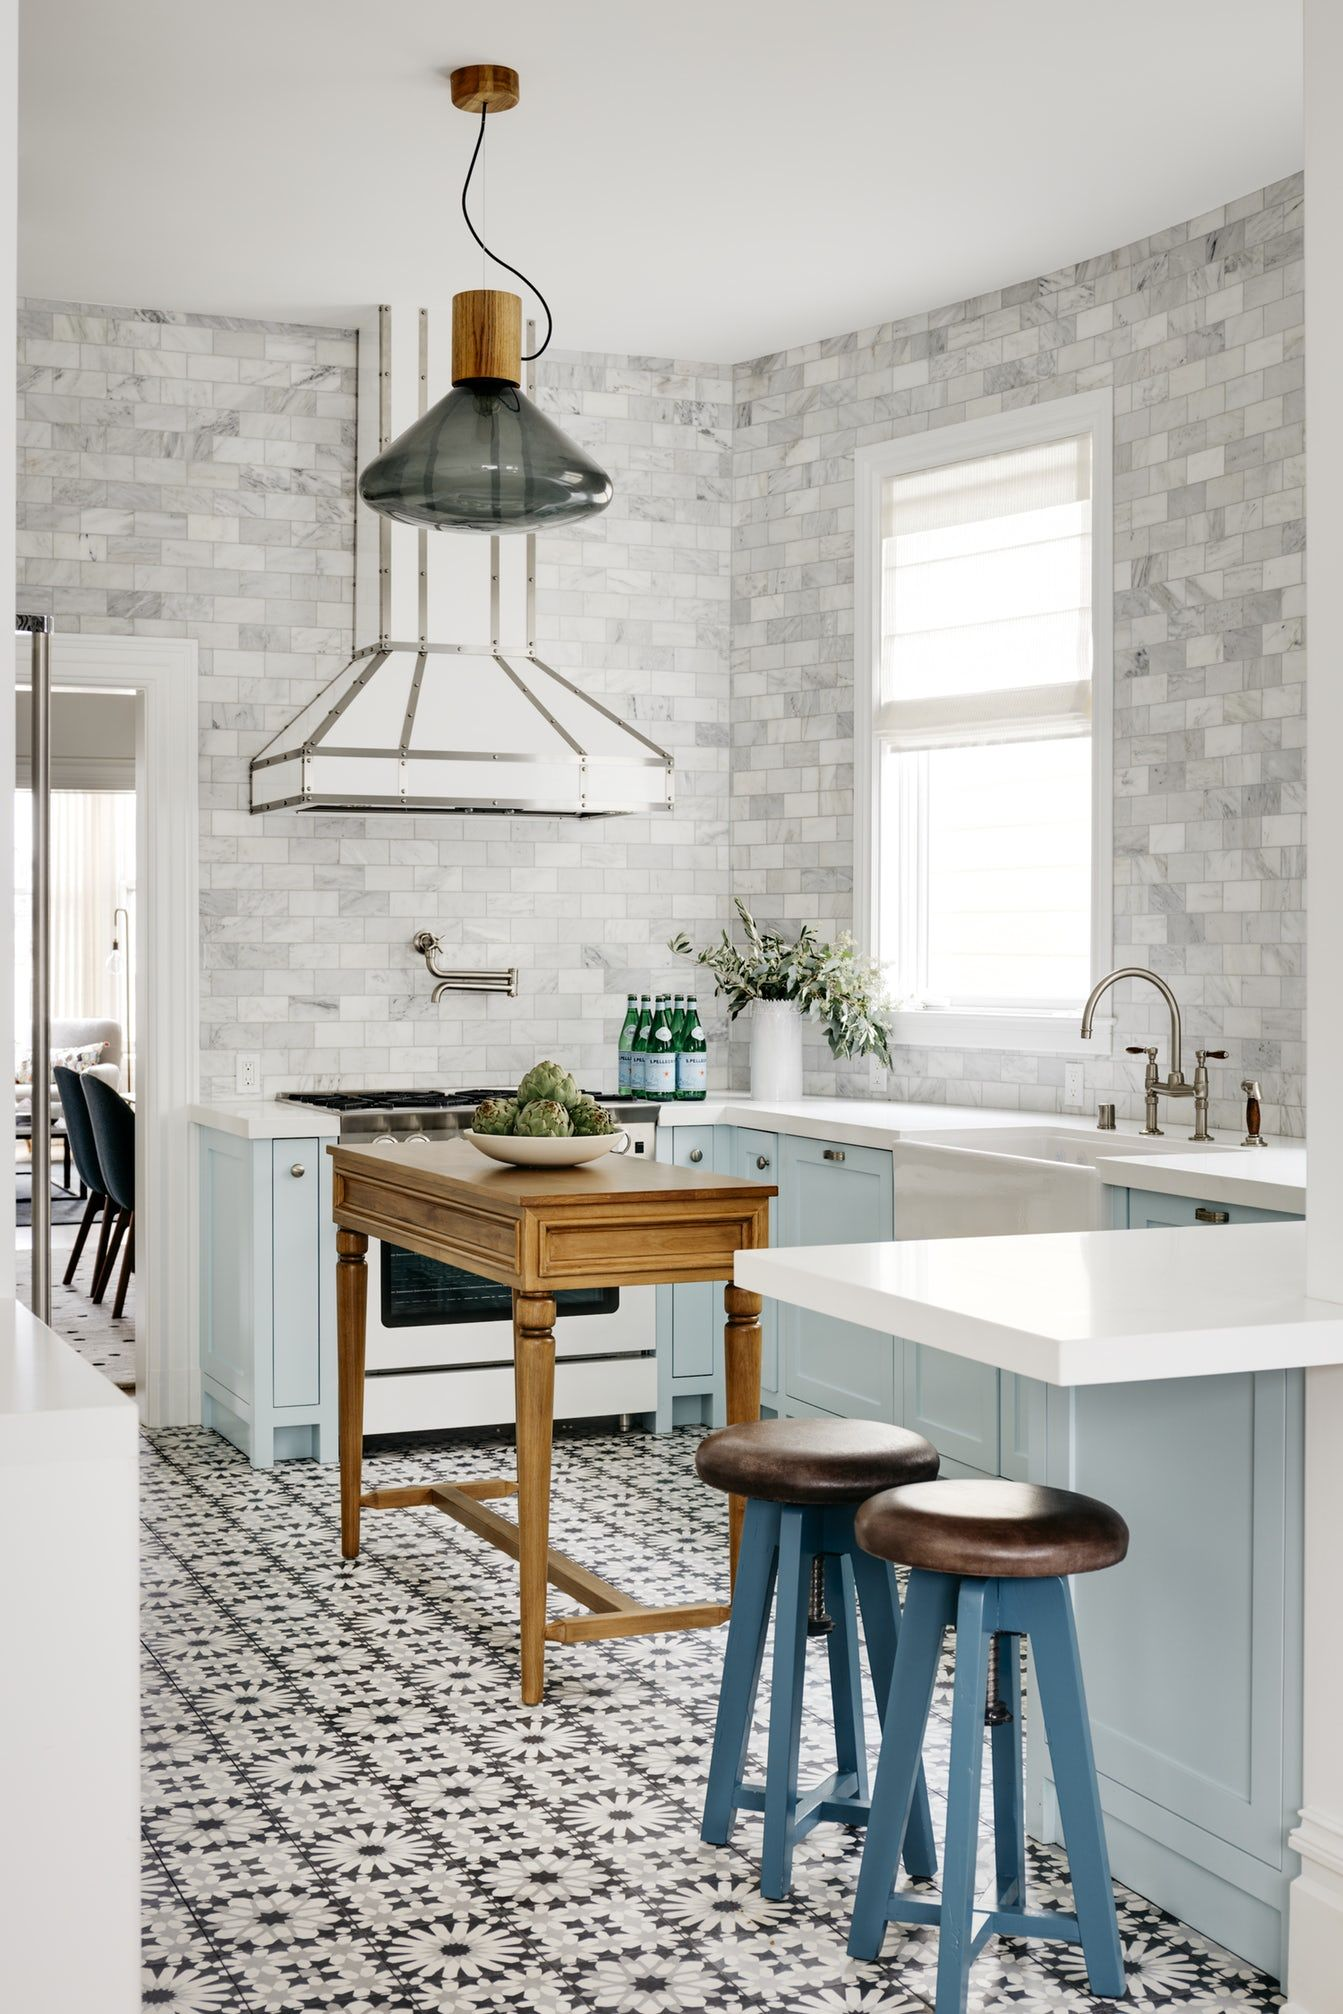 25 Subway Tile Backsplashes Stylish Ideas For